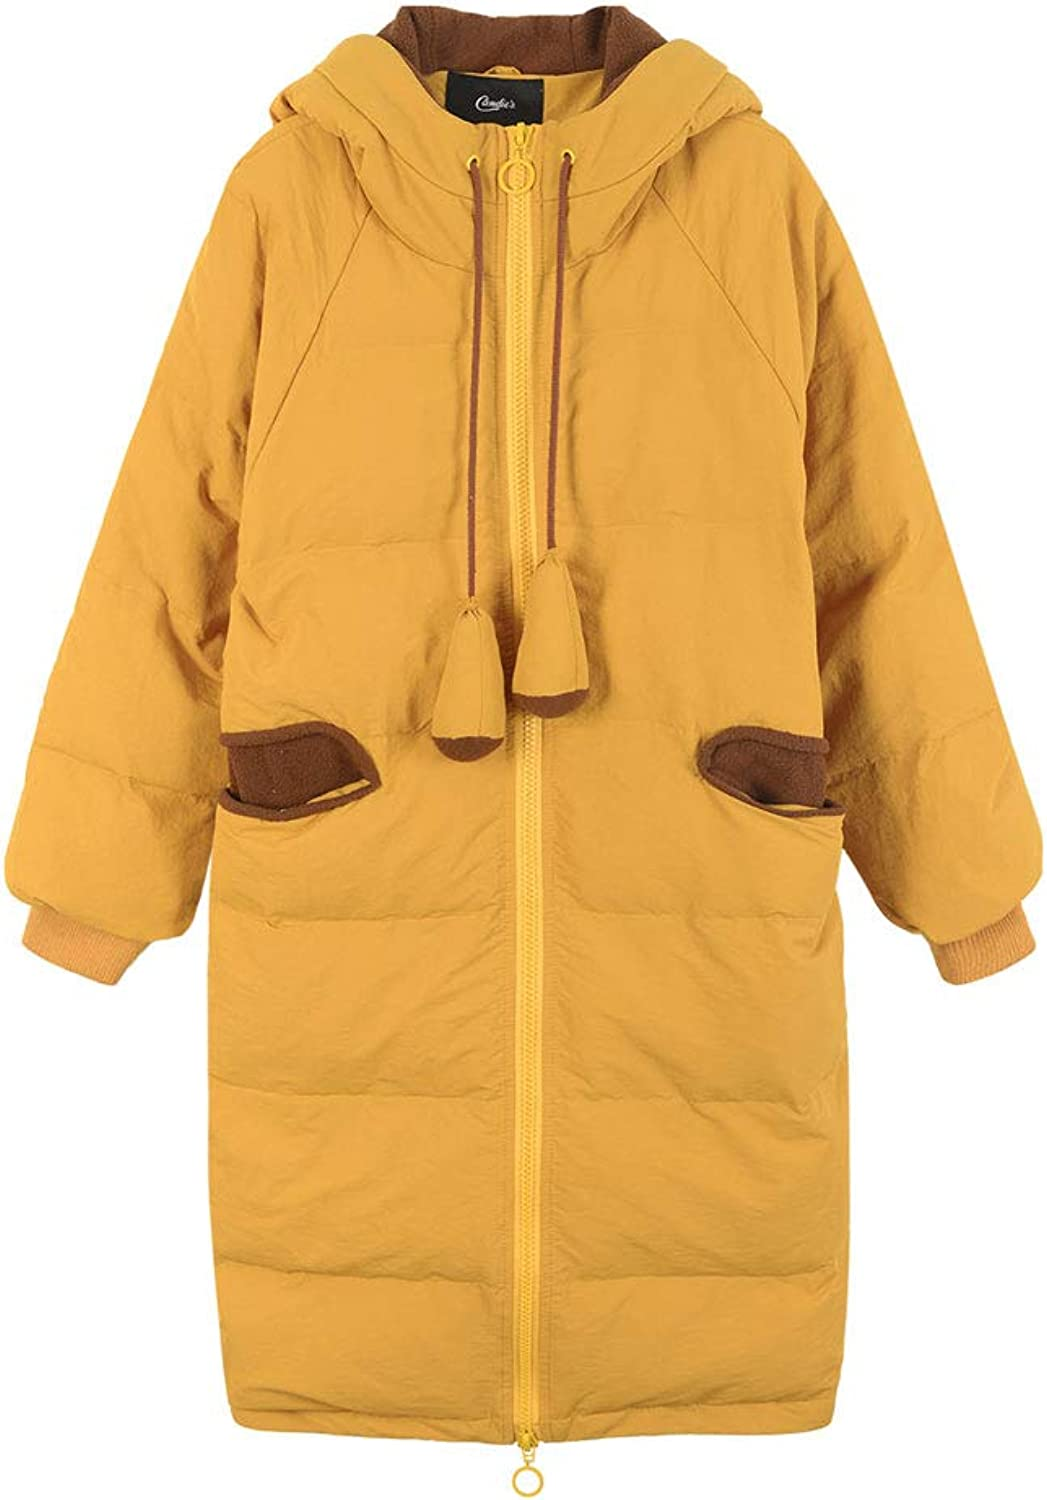 Yellow Long Over The Knee Down Jacket Fashion Hooded Cute Cotton Coat Winter Women's Straight Warm Jacket (color   Yellow, Size   M)